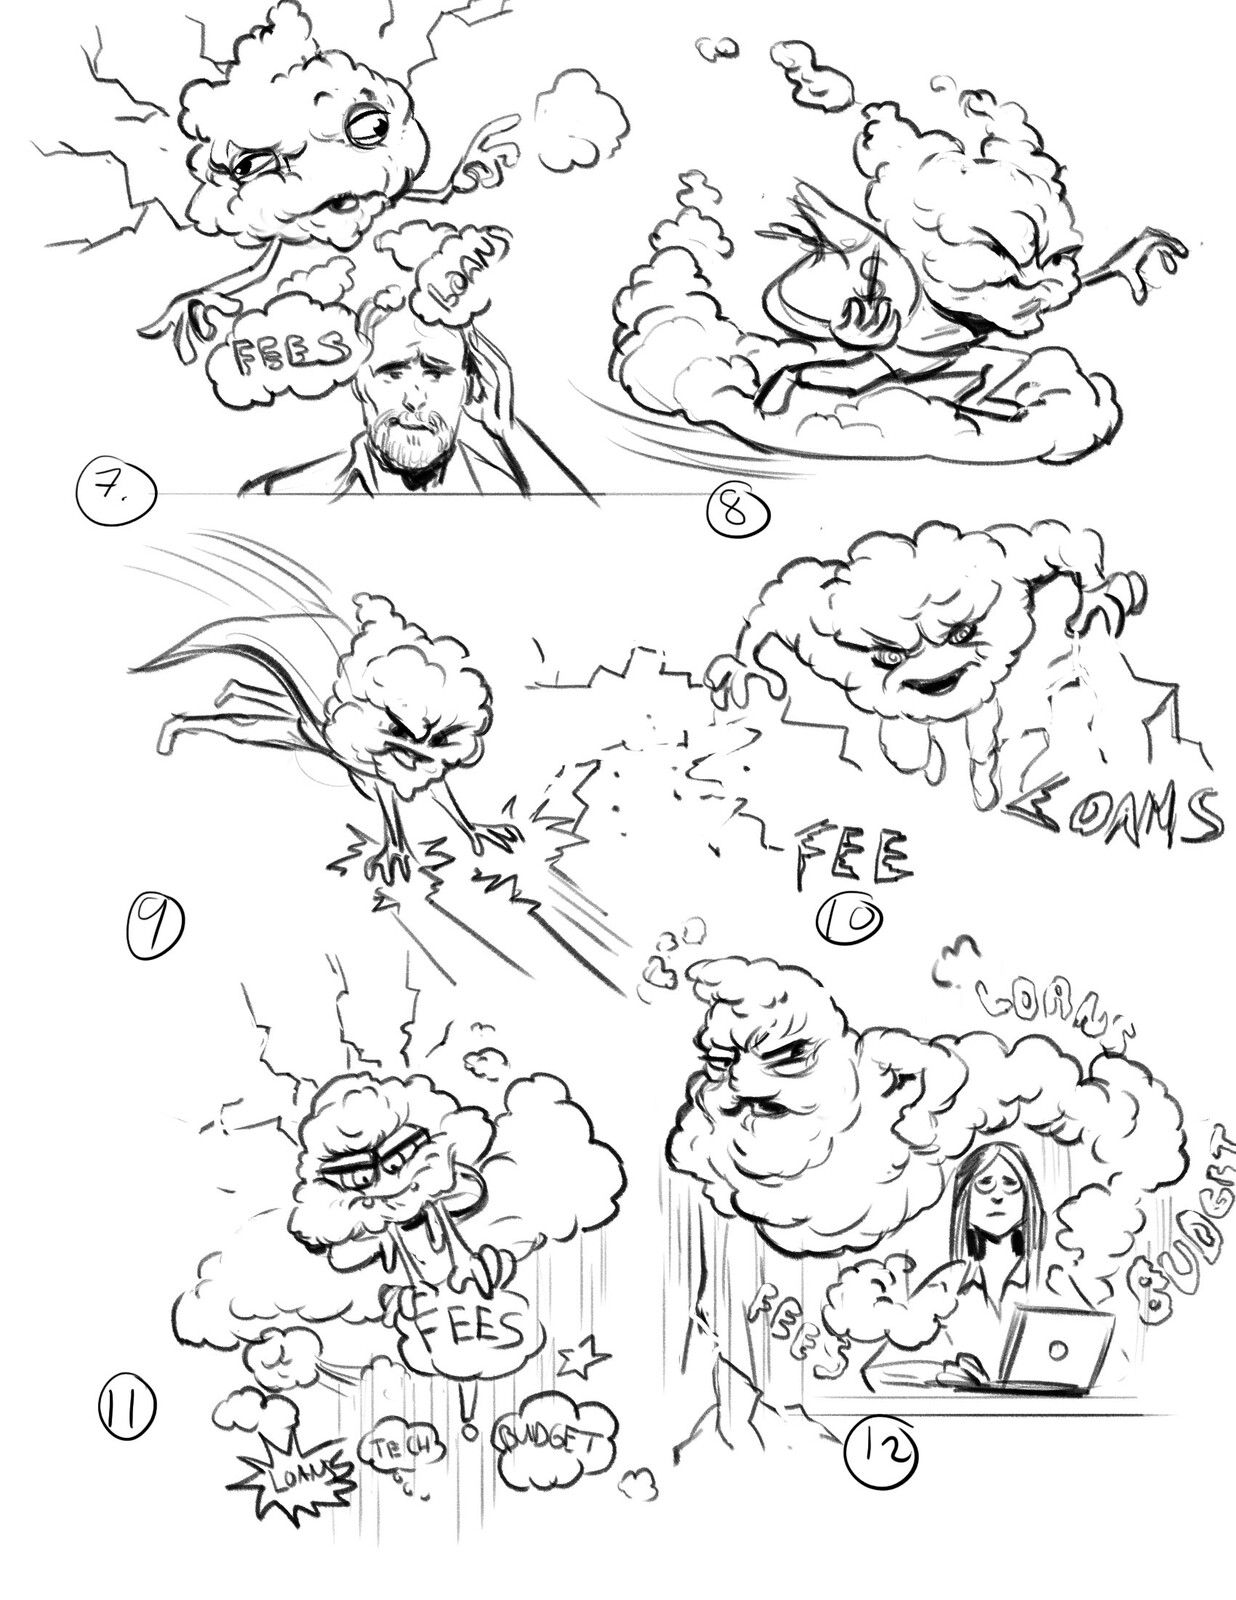 Early Brainstorm sketches 02